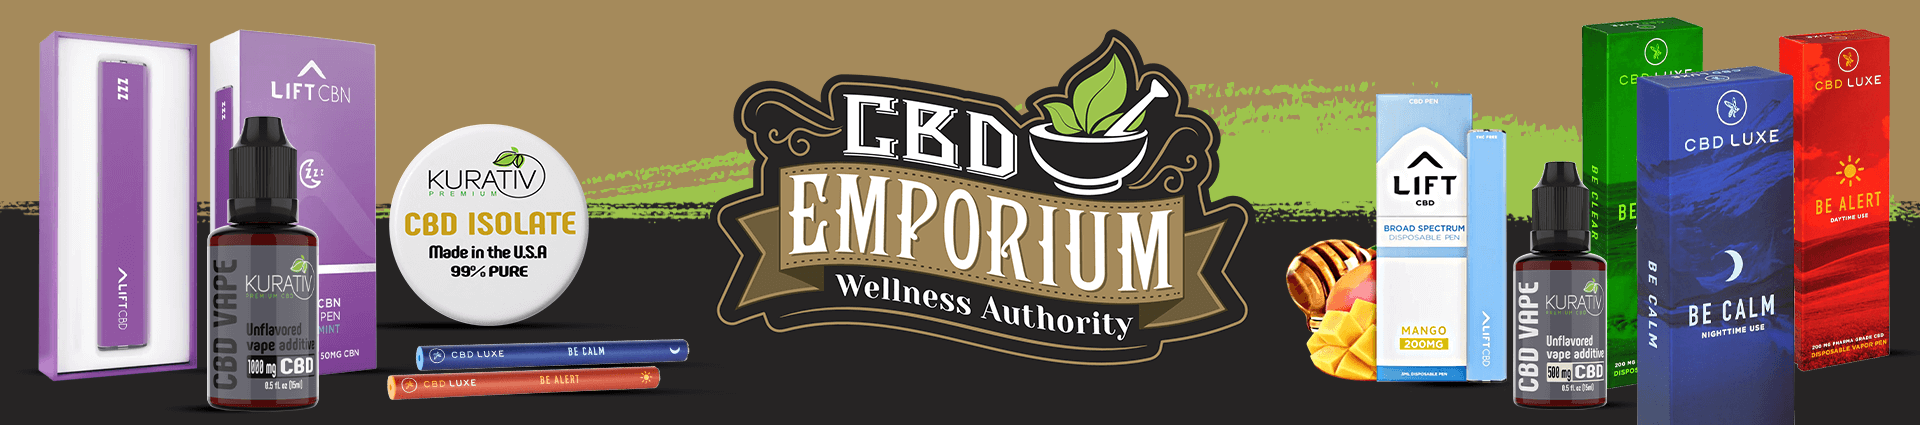 CBD Vapes products at CBD Emporium